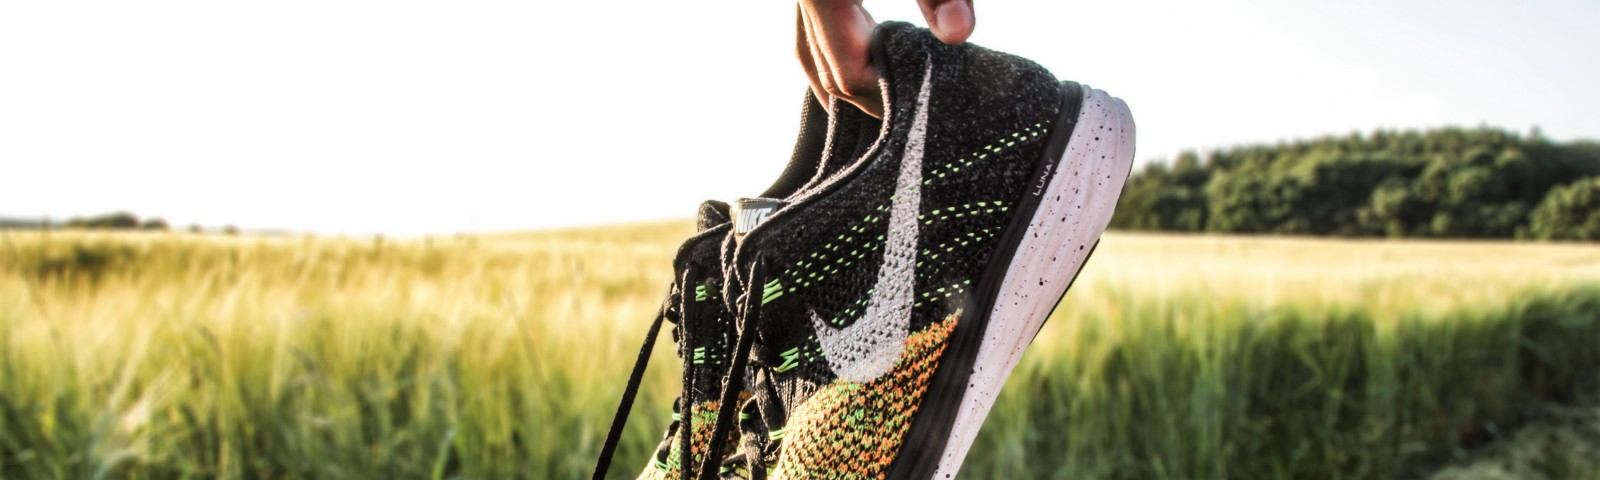 A picture of Nike Running shoes being held up.